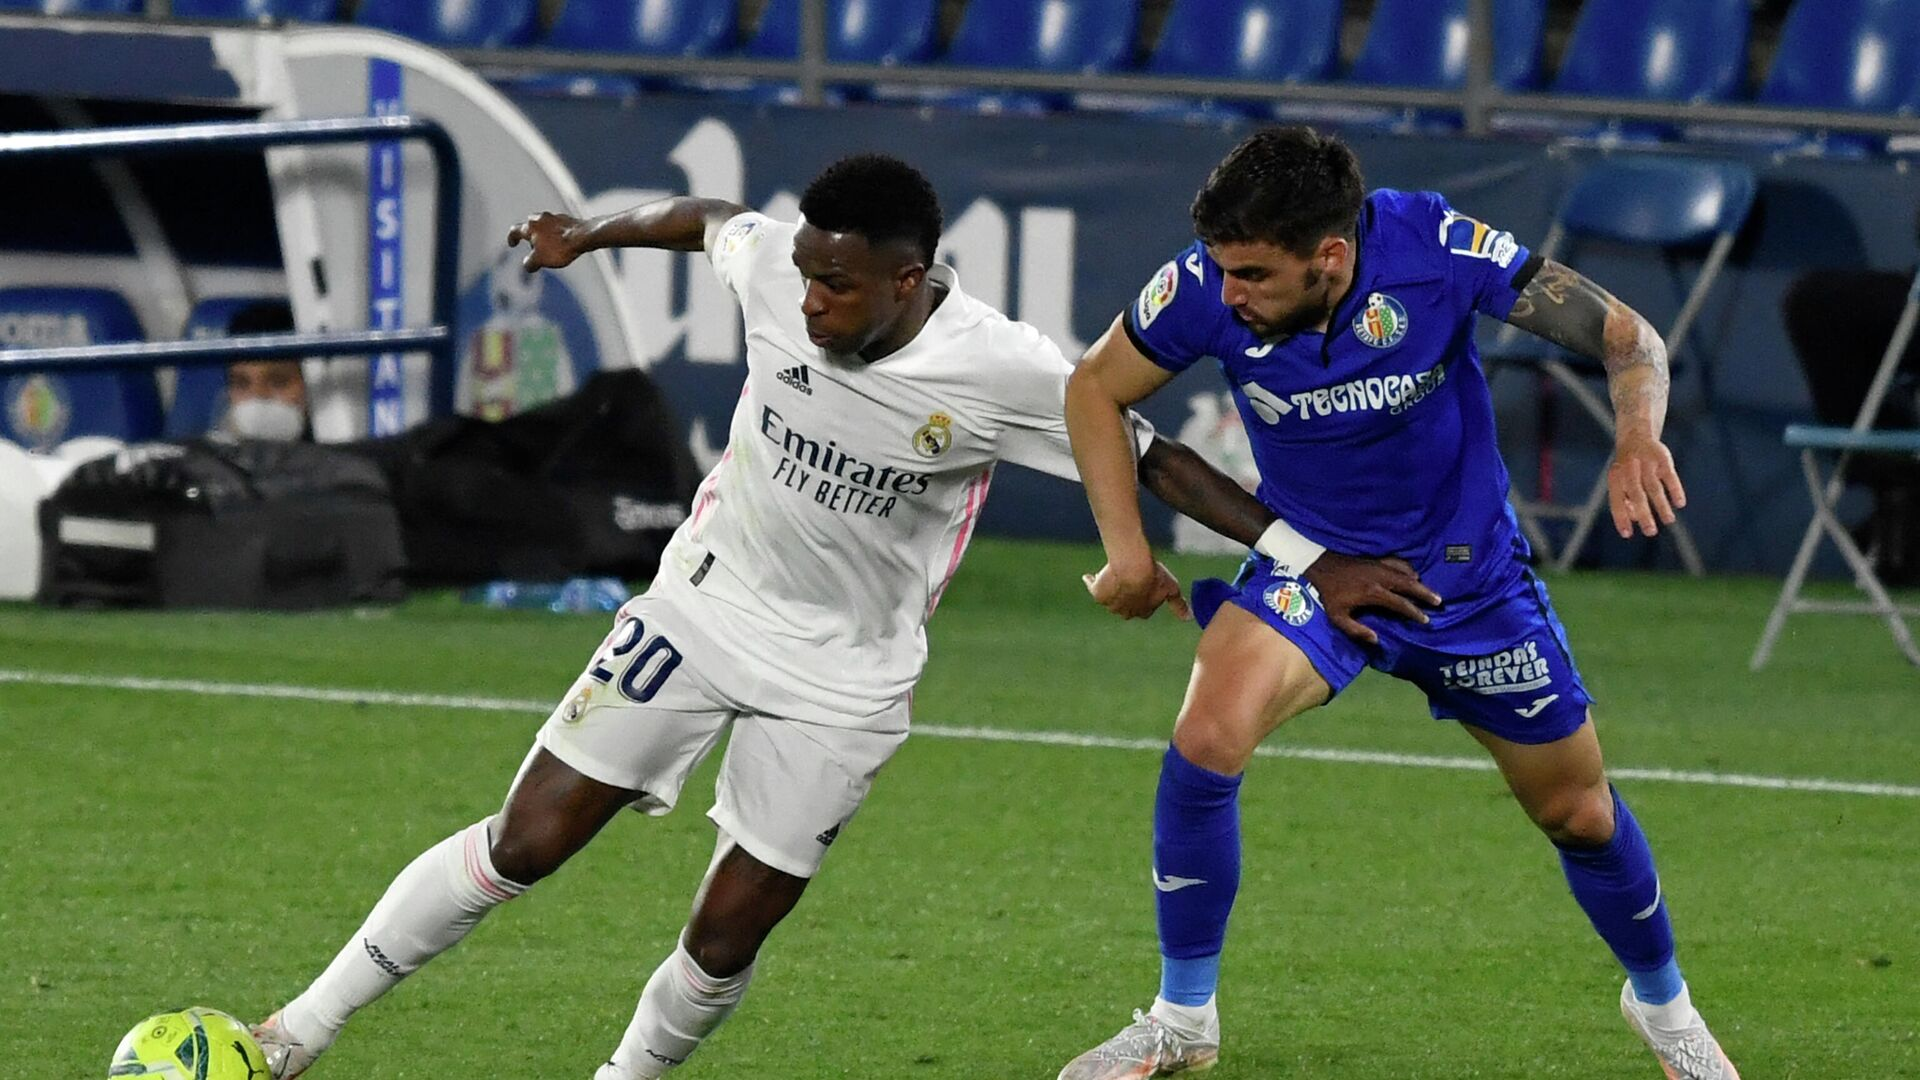 Real Madrid's Brazilian forward Vinicius Junior (L) vies with Getafe's Uruguayan midfielder Mauro Arambarri during the Spanish League football match between Getafe CF and Real Madrid CF at the Col. Alfonso Perez stadium in Getafe on April 18, 2021. (Photo by PIERRE-PHILIPPE MARCOU / AFP) - РИА Новости, 1920, 19.04.2021